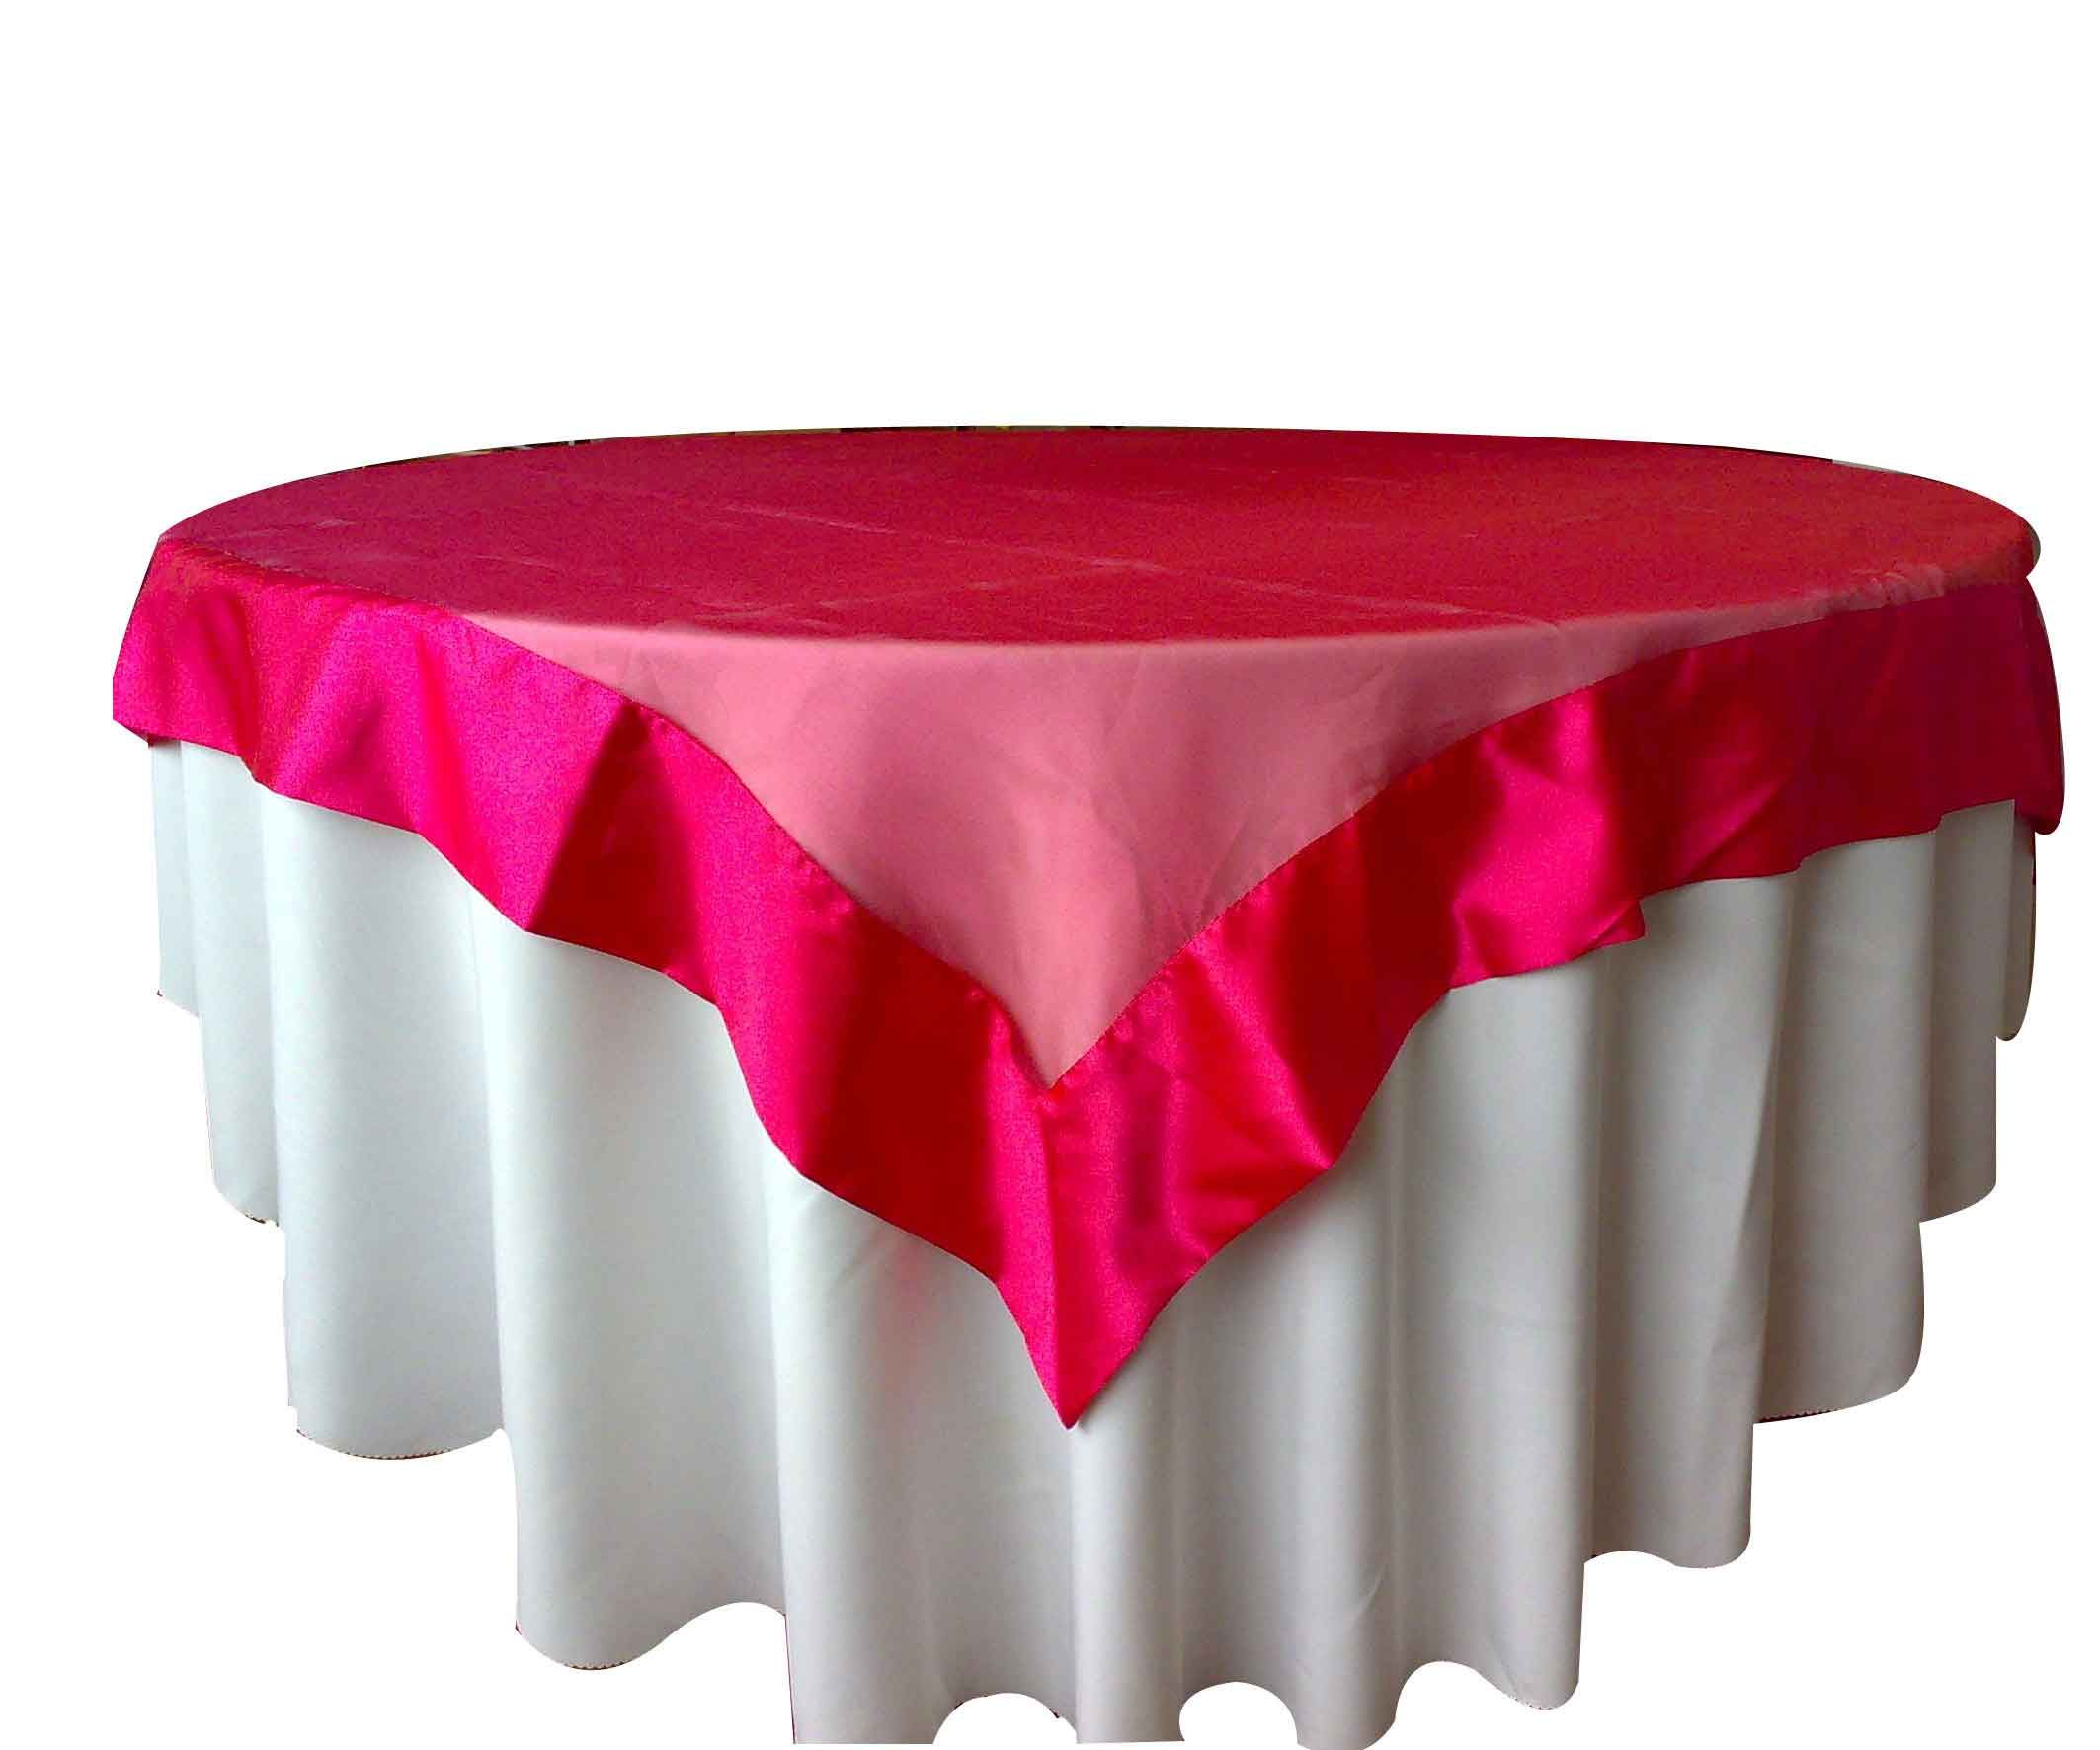 explore outdoor tablecloth tablecloths and more - Kitchen Table Covers Vinyl